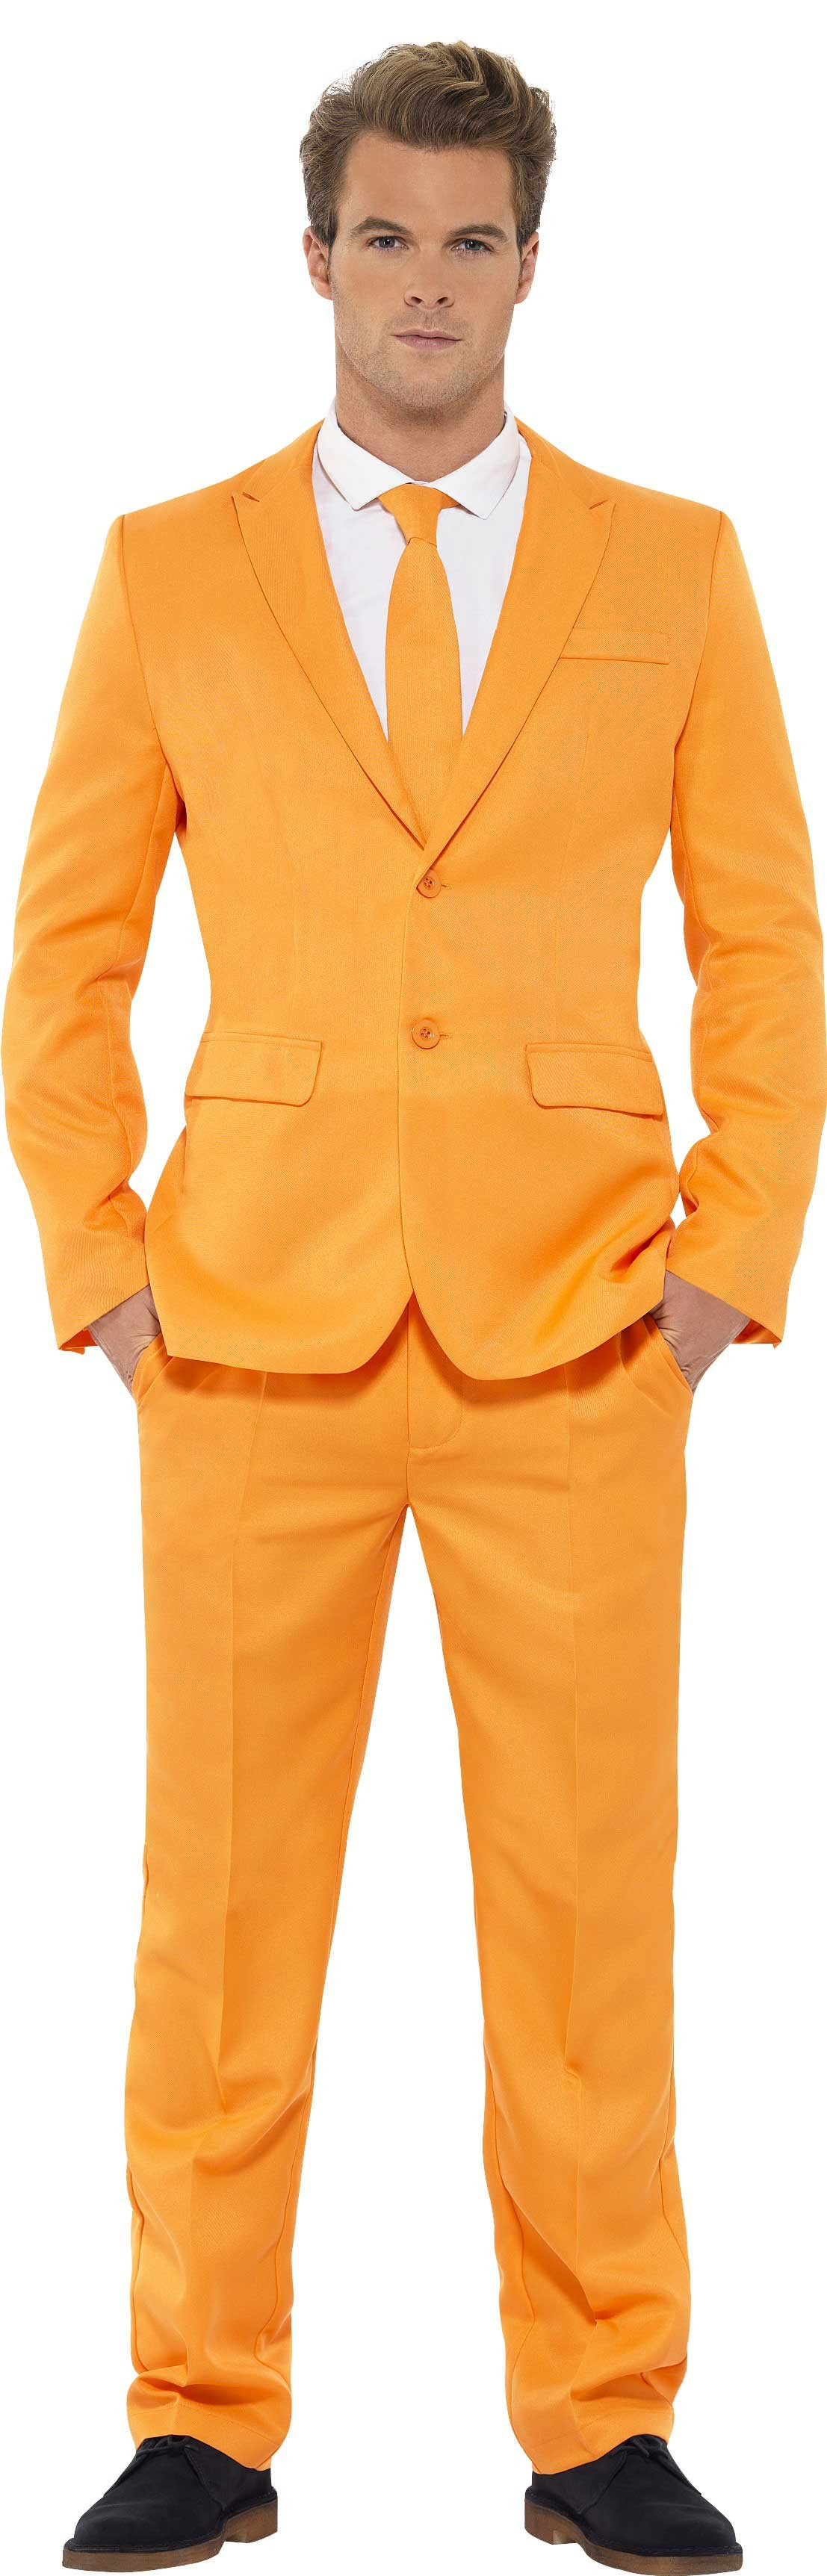 Men'S Orange Stand Out Suit Fancy Dress Costume